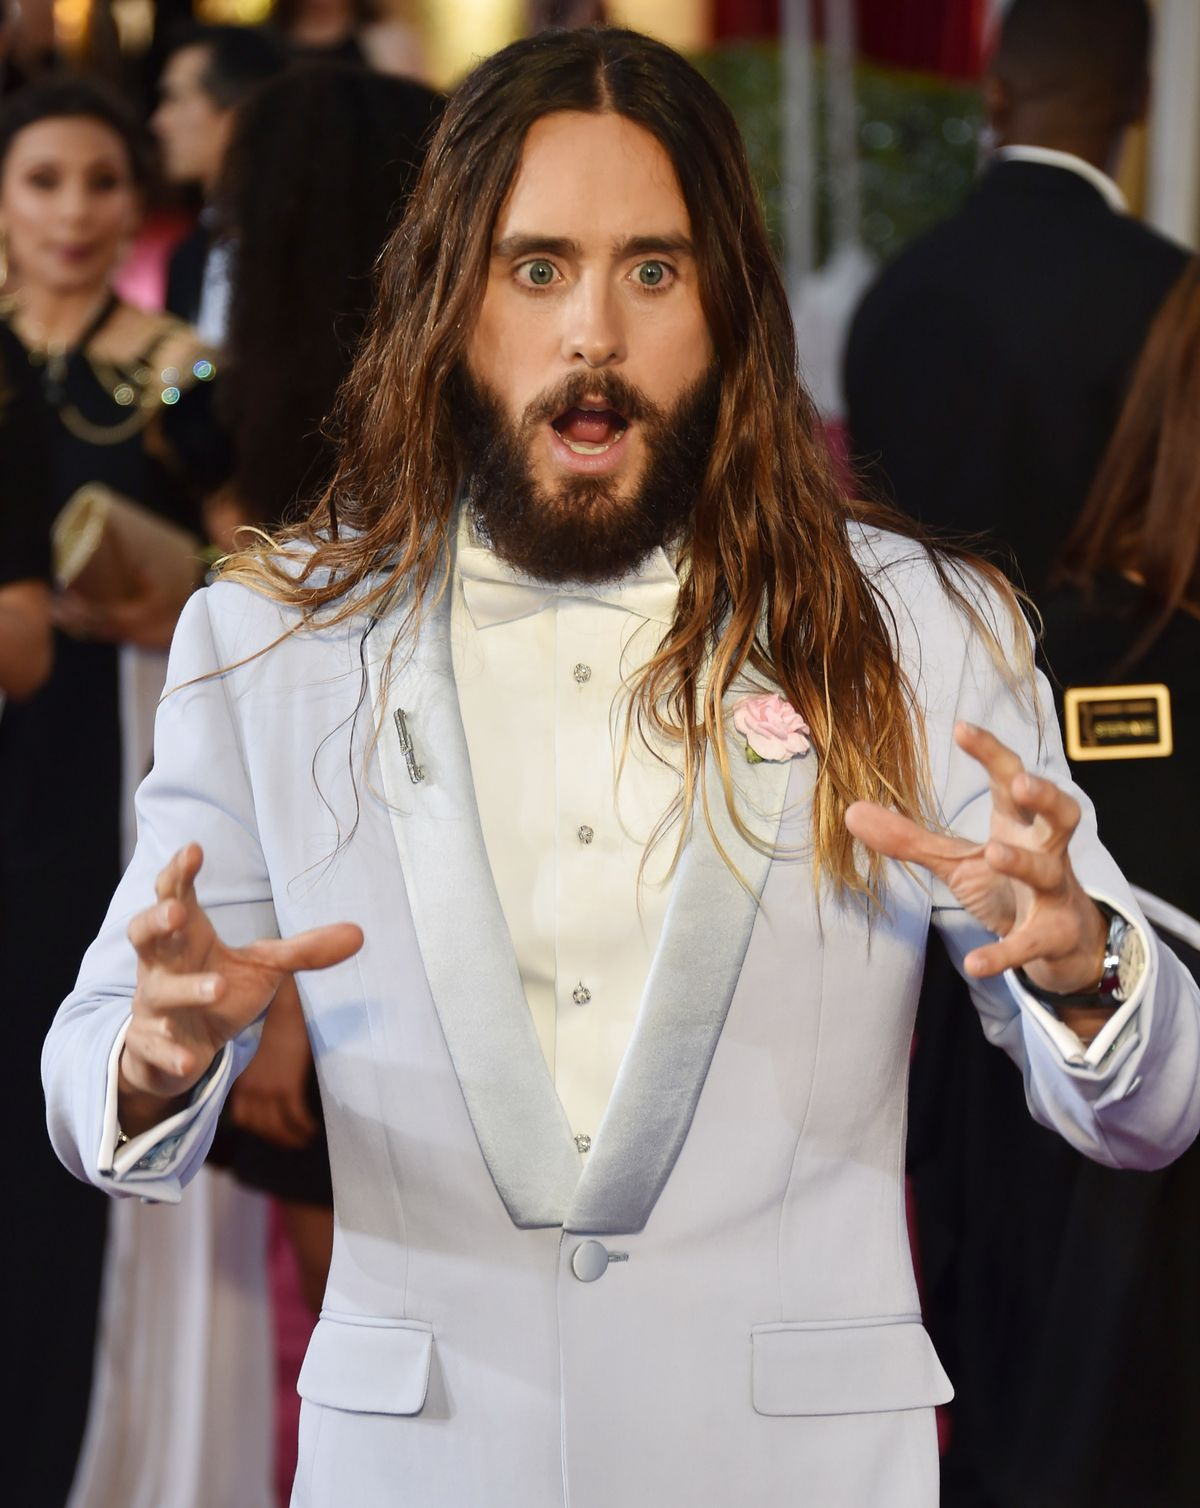 14 Pictures Proving That Jared Leto Had More Fun Than Anyone On Oscar Night Leto3-1424700317.jpg?quality=0